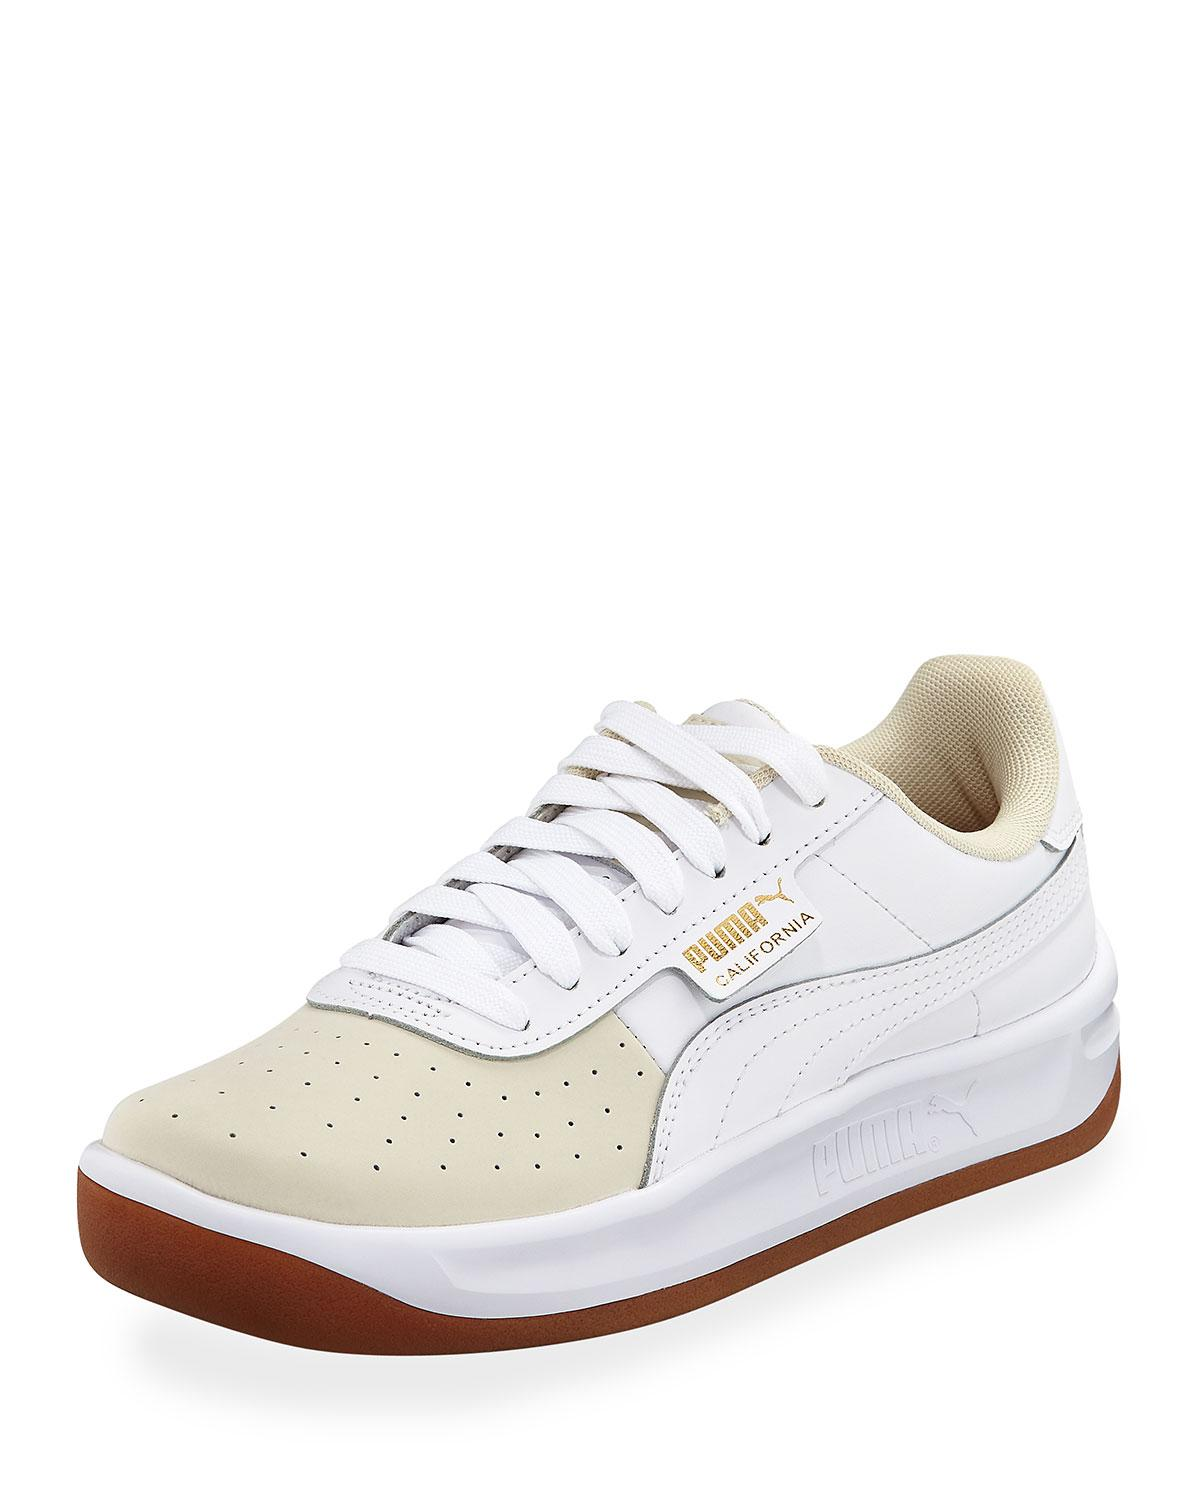 f41861eb516 Lyst - PUMA California Exotic Sneakers in White for Men